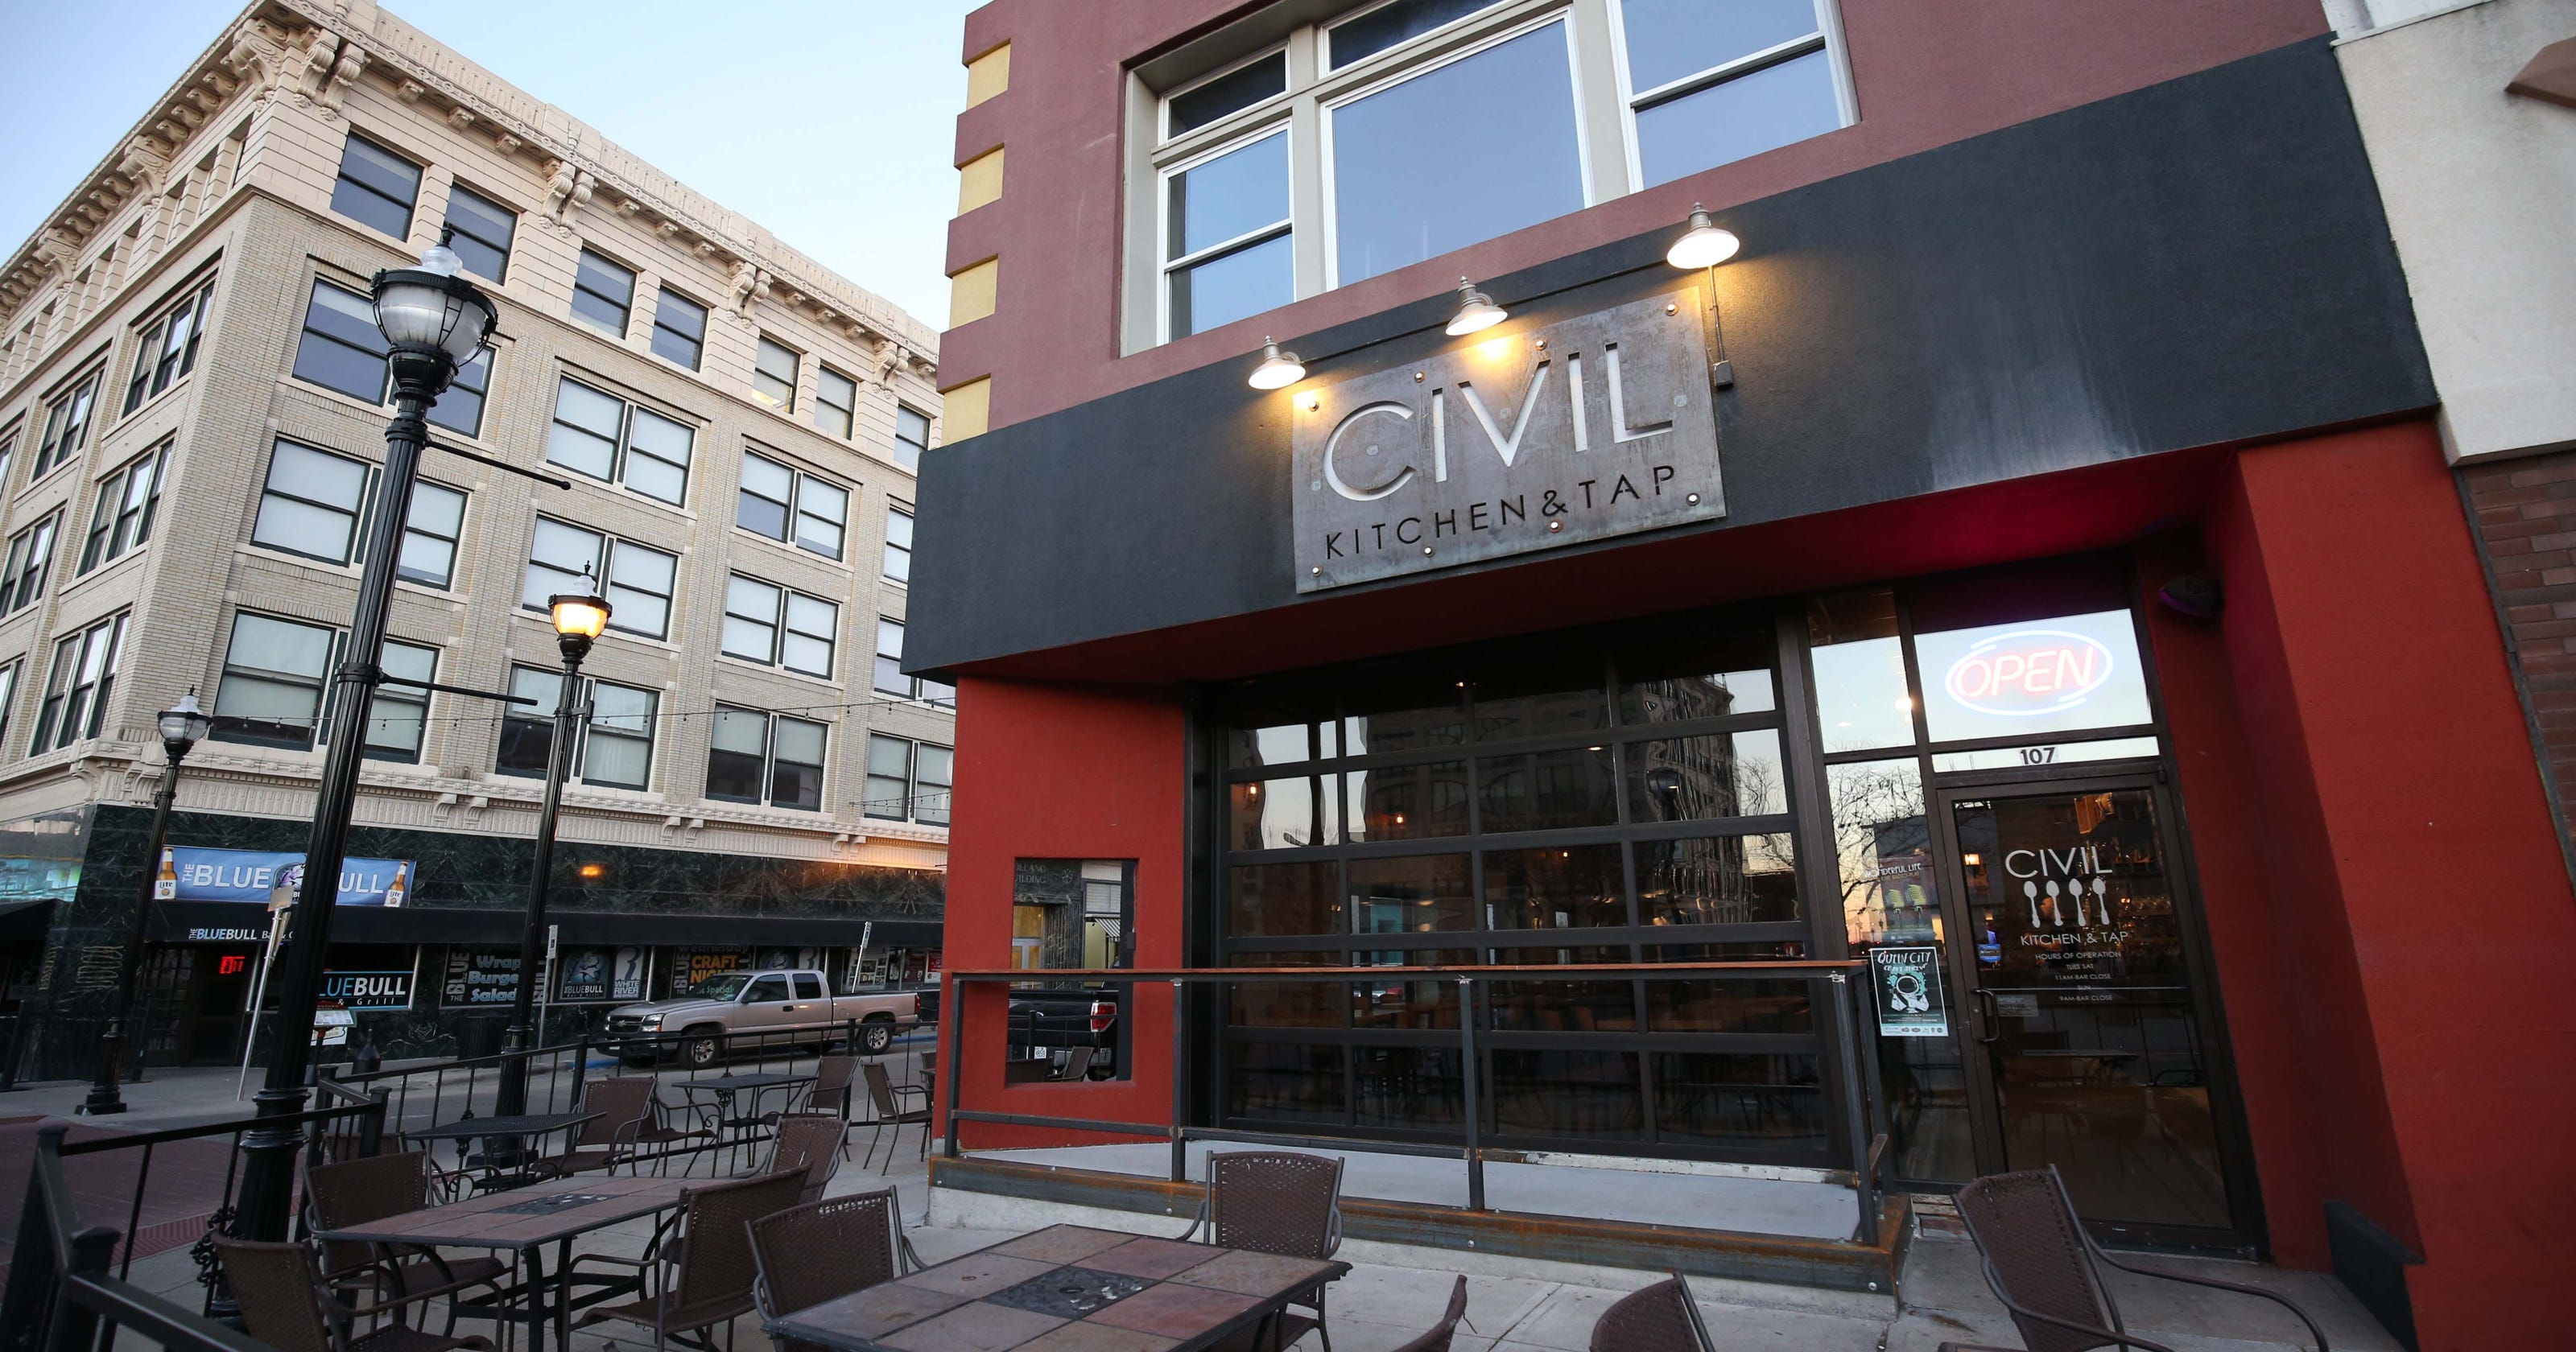 Dine On Our Dime Civil Kitchen And Tap